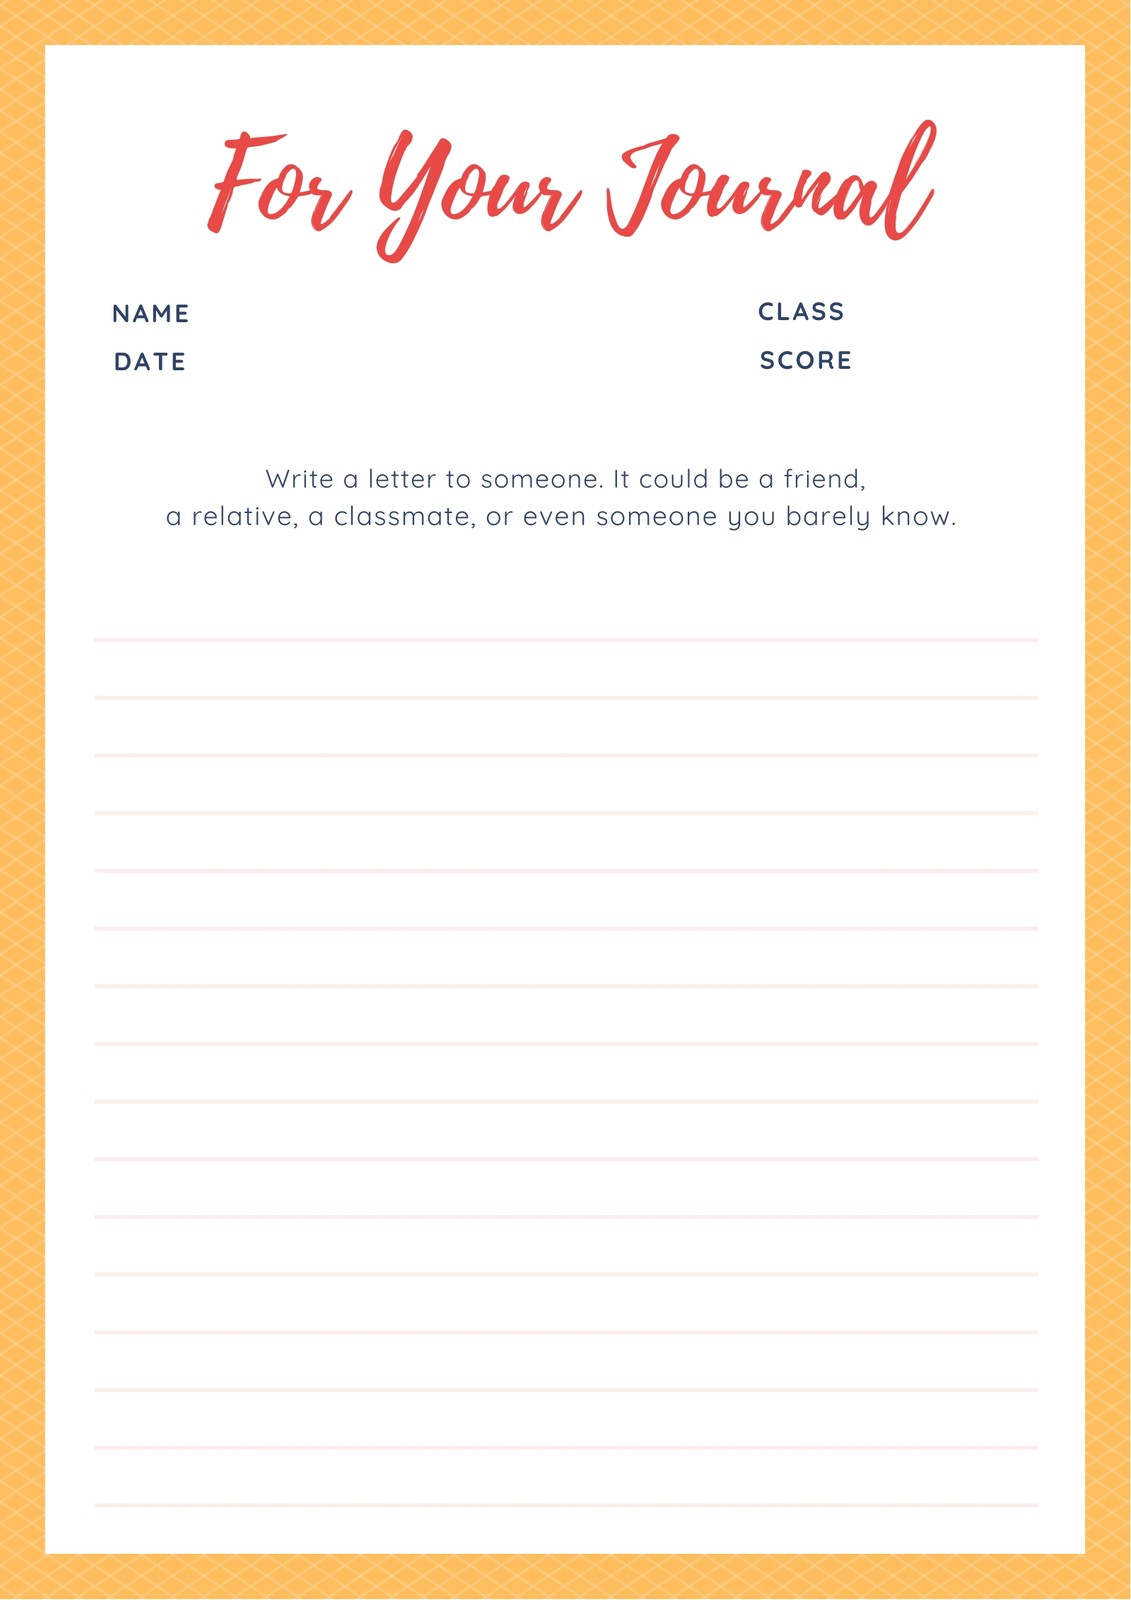 Yellow Bordered Simple Journal Writing Prompt Worksheet